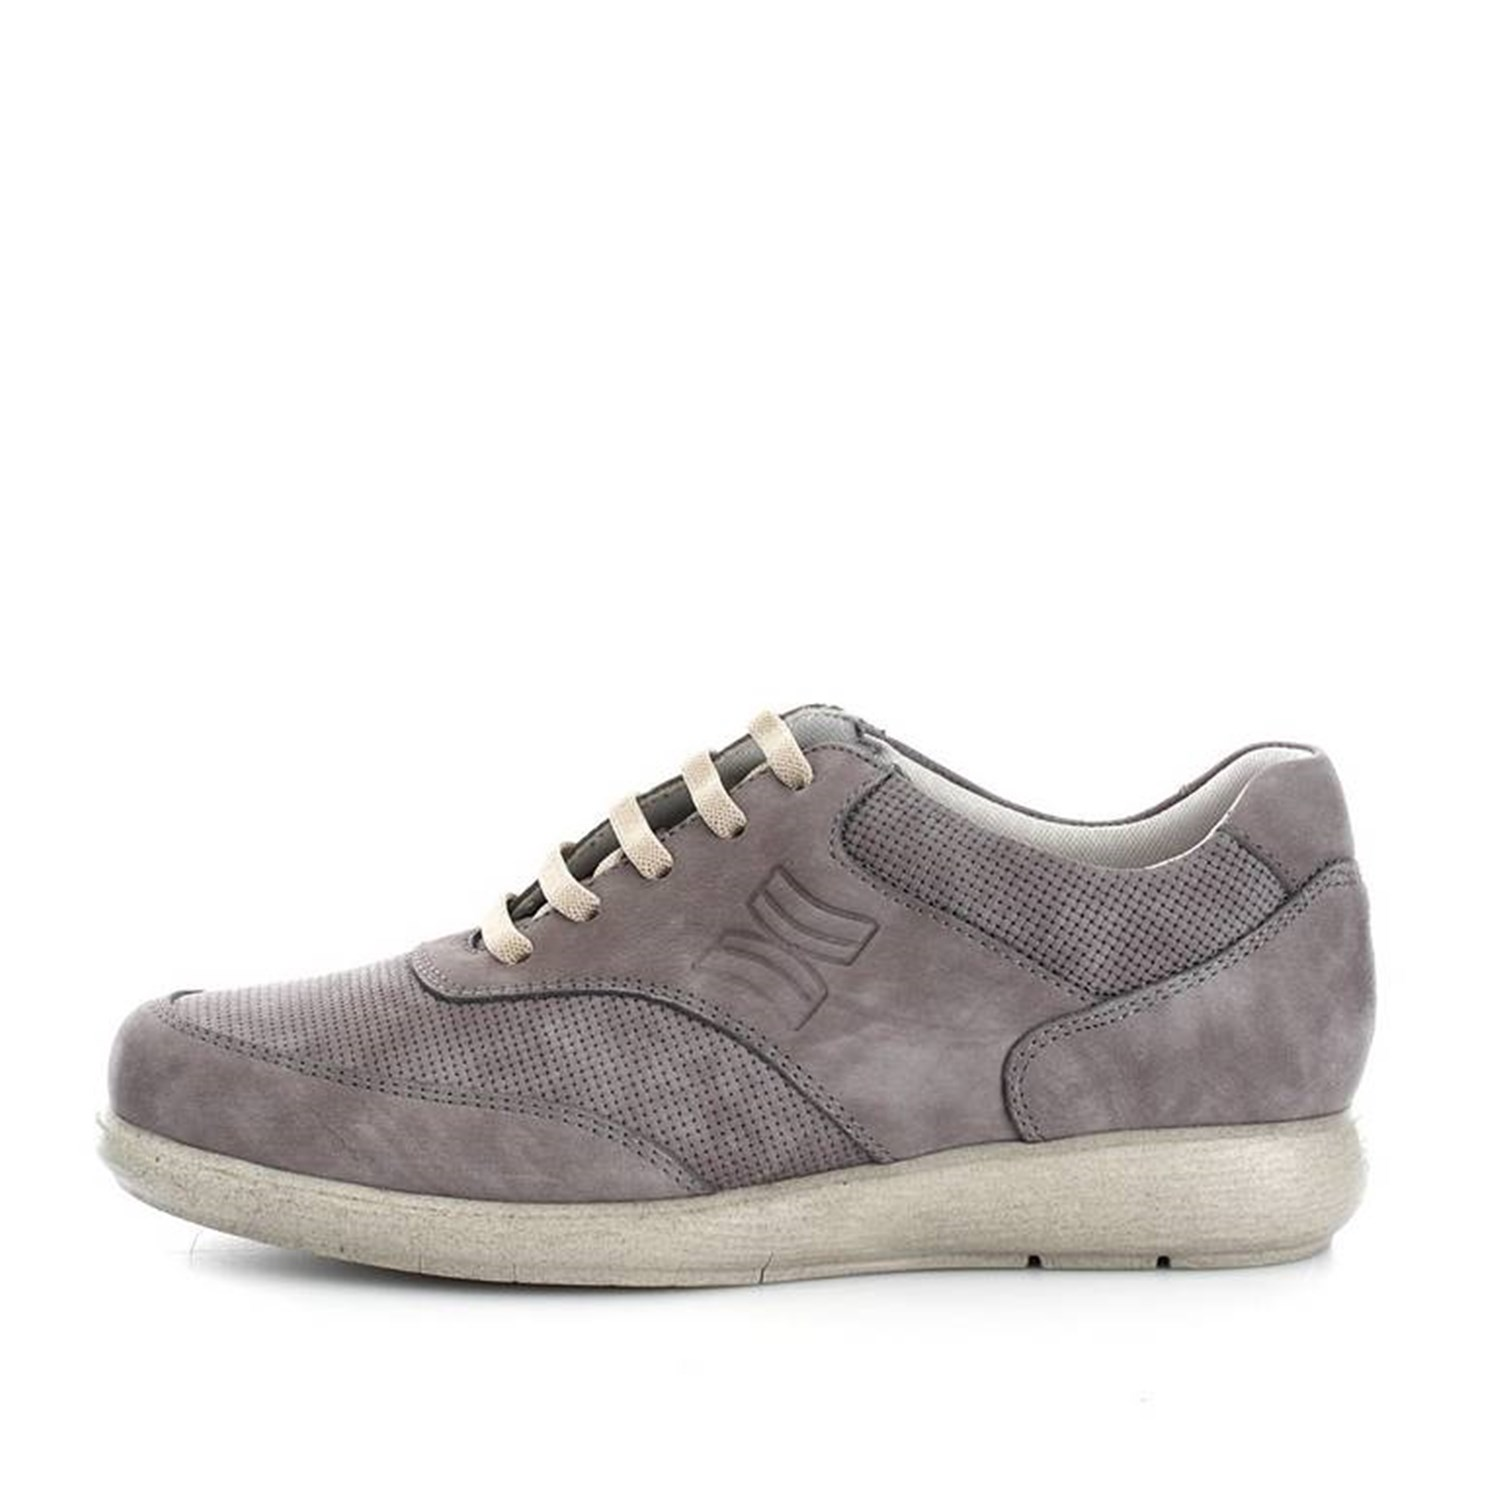 Callaghan Shoes Man low GREY 89506